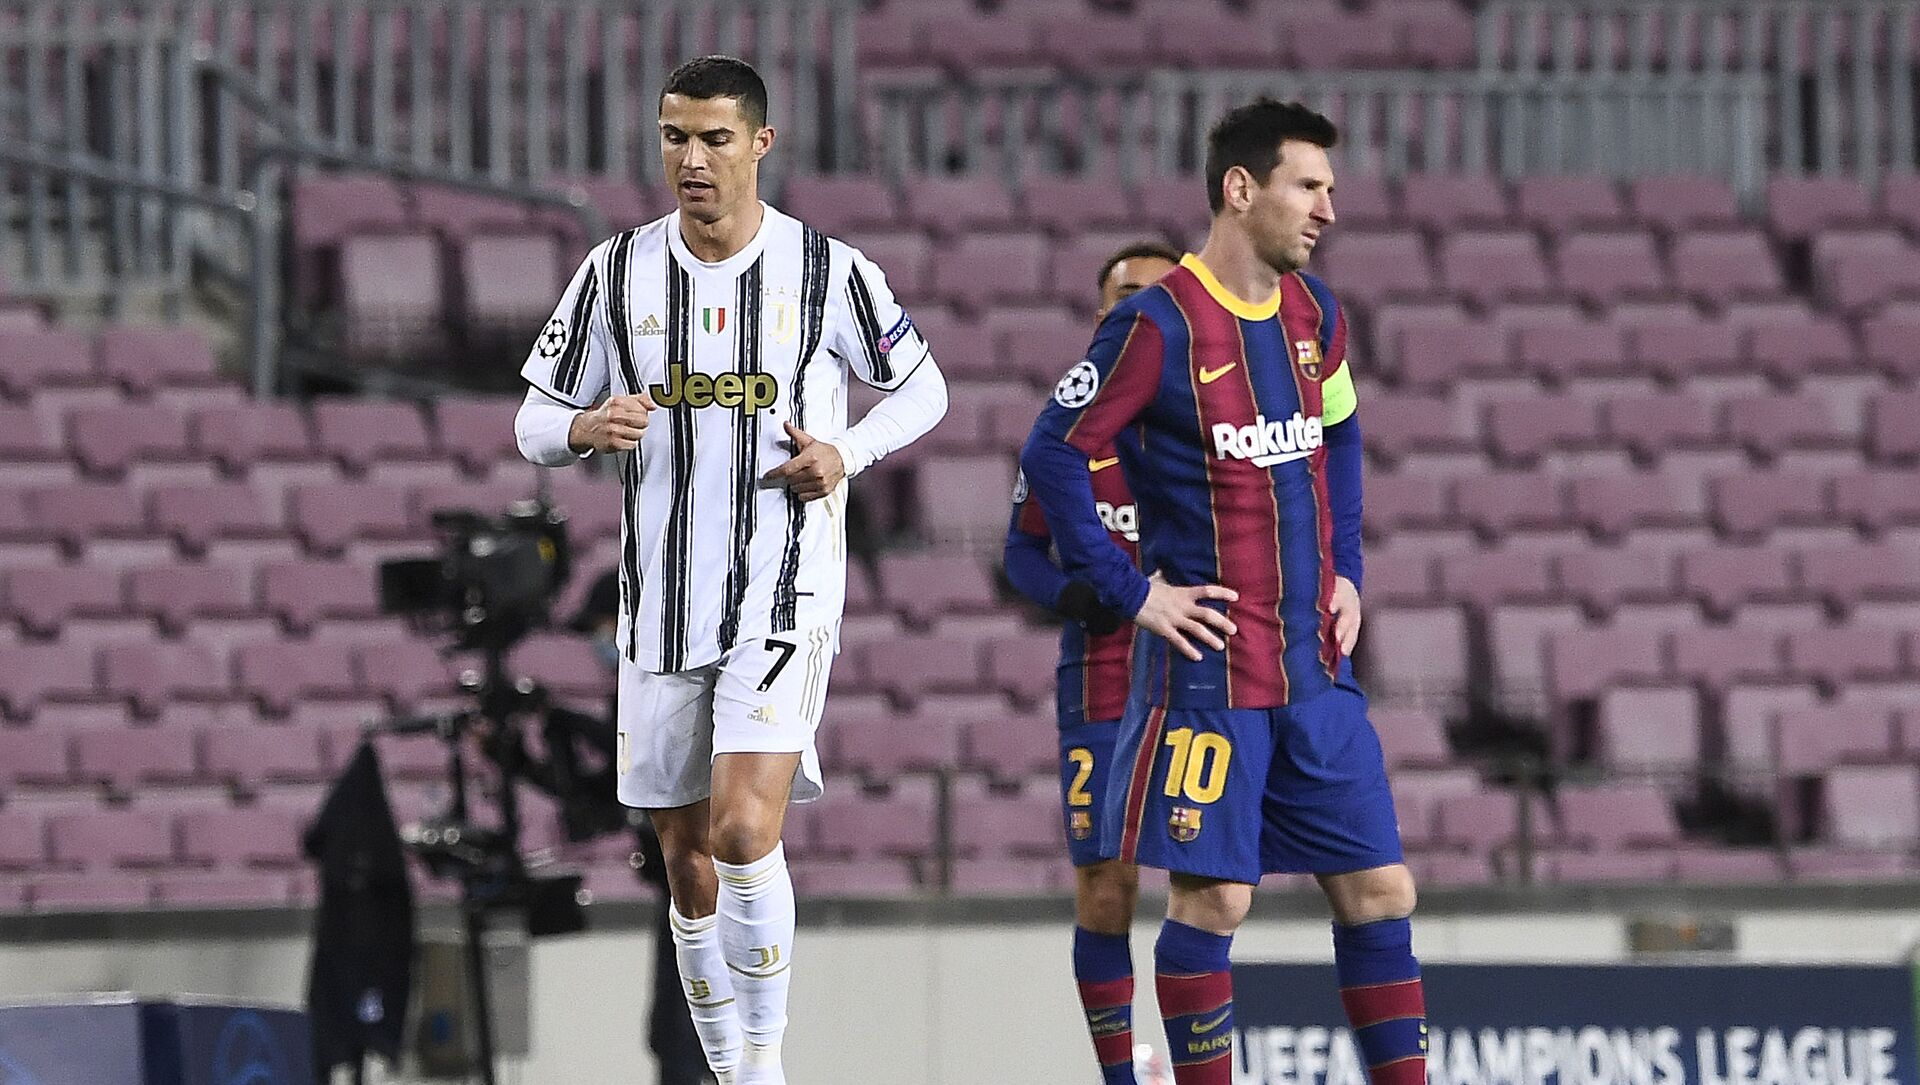 Juventus' Portuguese forward Cristiano Ronaldo (L) walks past Barcelona's Argentinian forward Lionel Messi during the UEFA Champions League group G football match between Barcelona and Juventus at the Camp Nou stadium in Barcelona on December 8, 2020 - Sputnik International, 1920, 24.07.2021